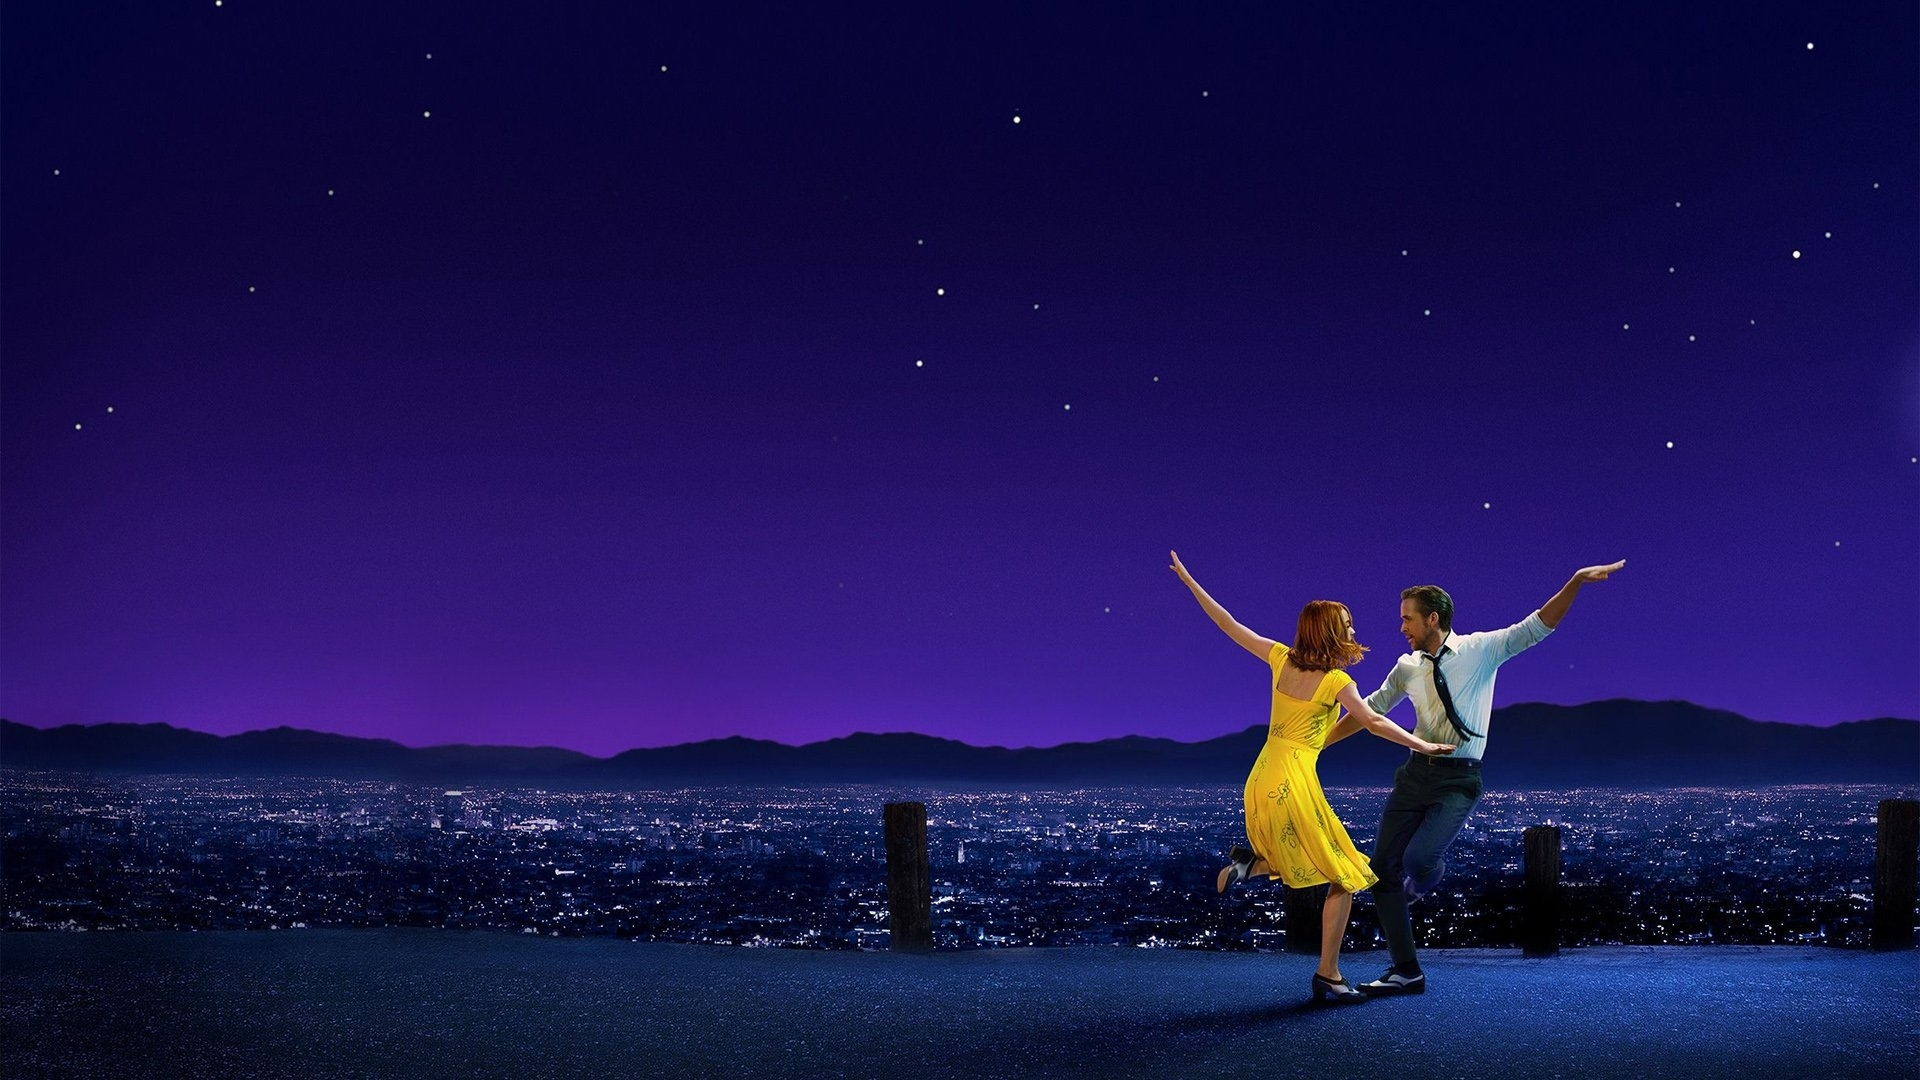 23 la la land hd wallpapers | background images - wallpaper abyss